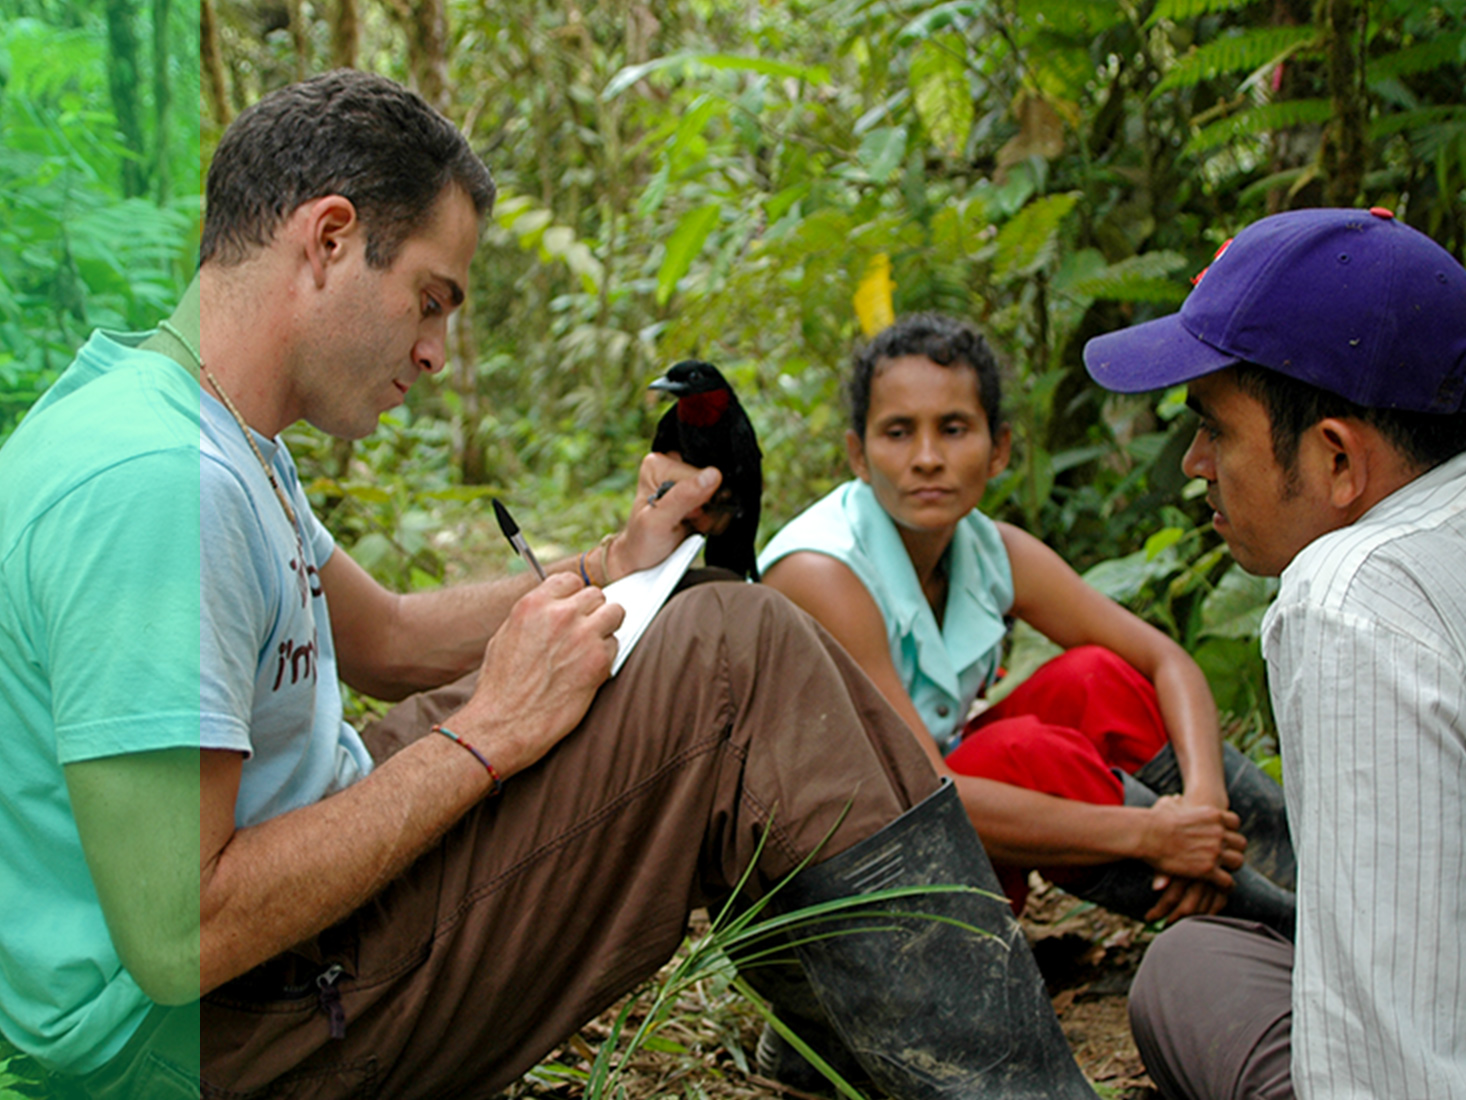 A student holding a bird takes notes while sitting in a rainforest with two others.